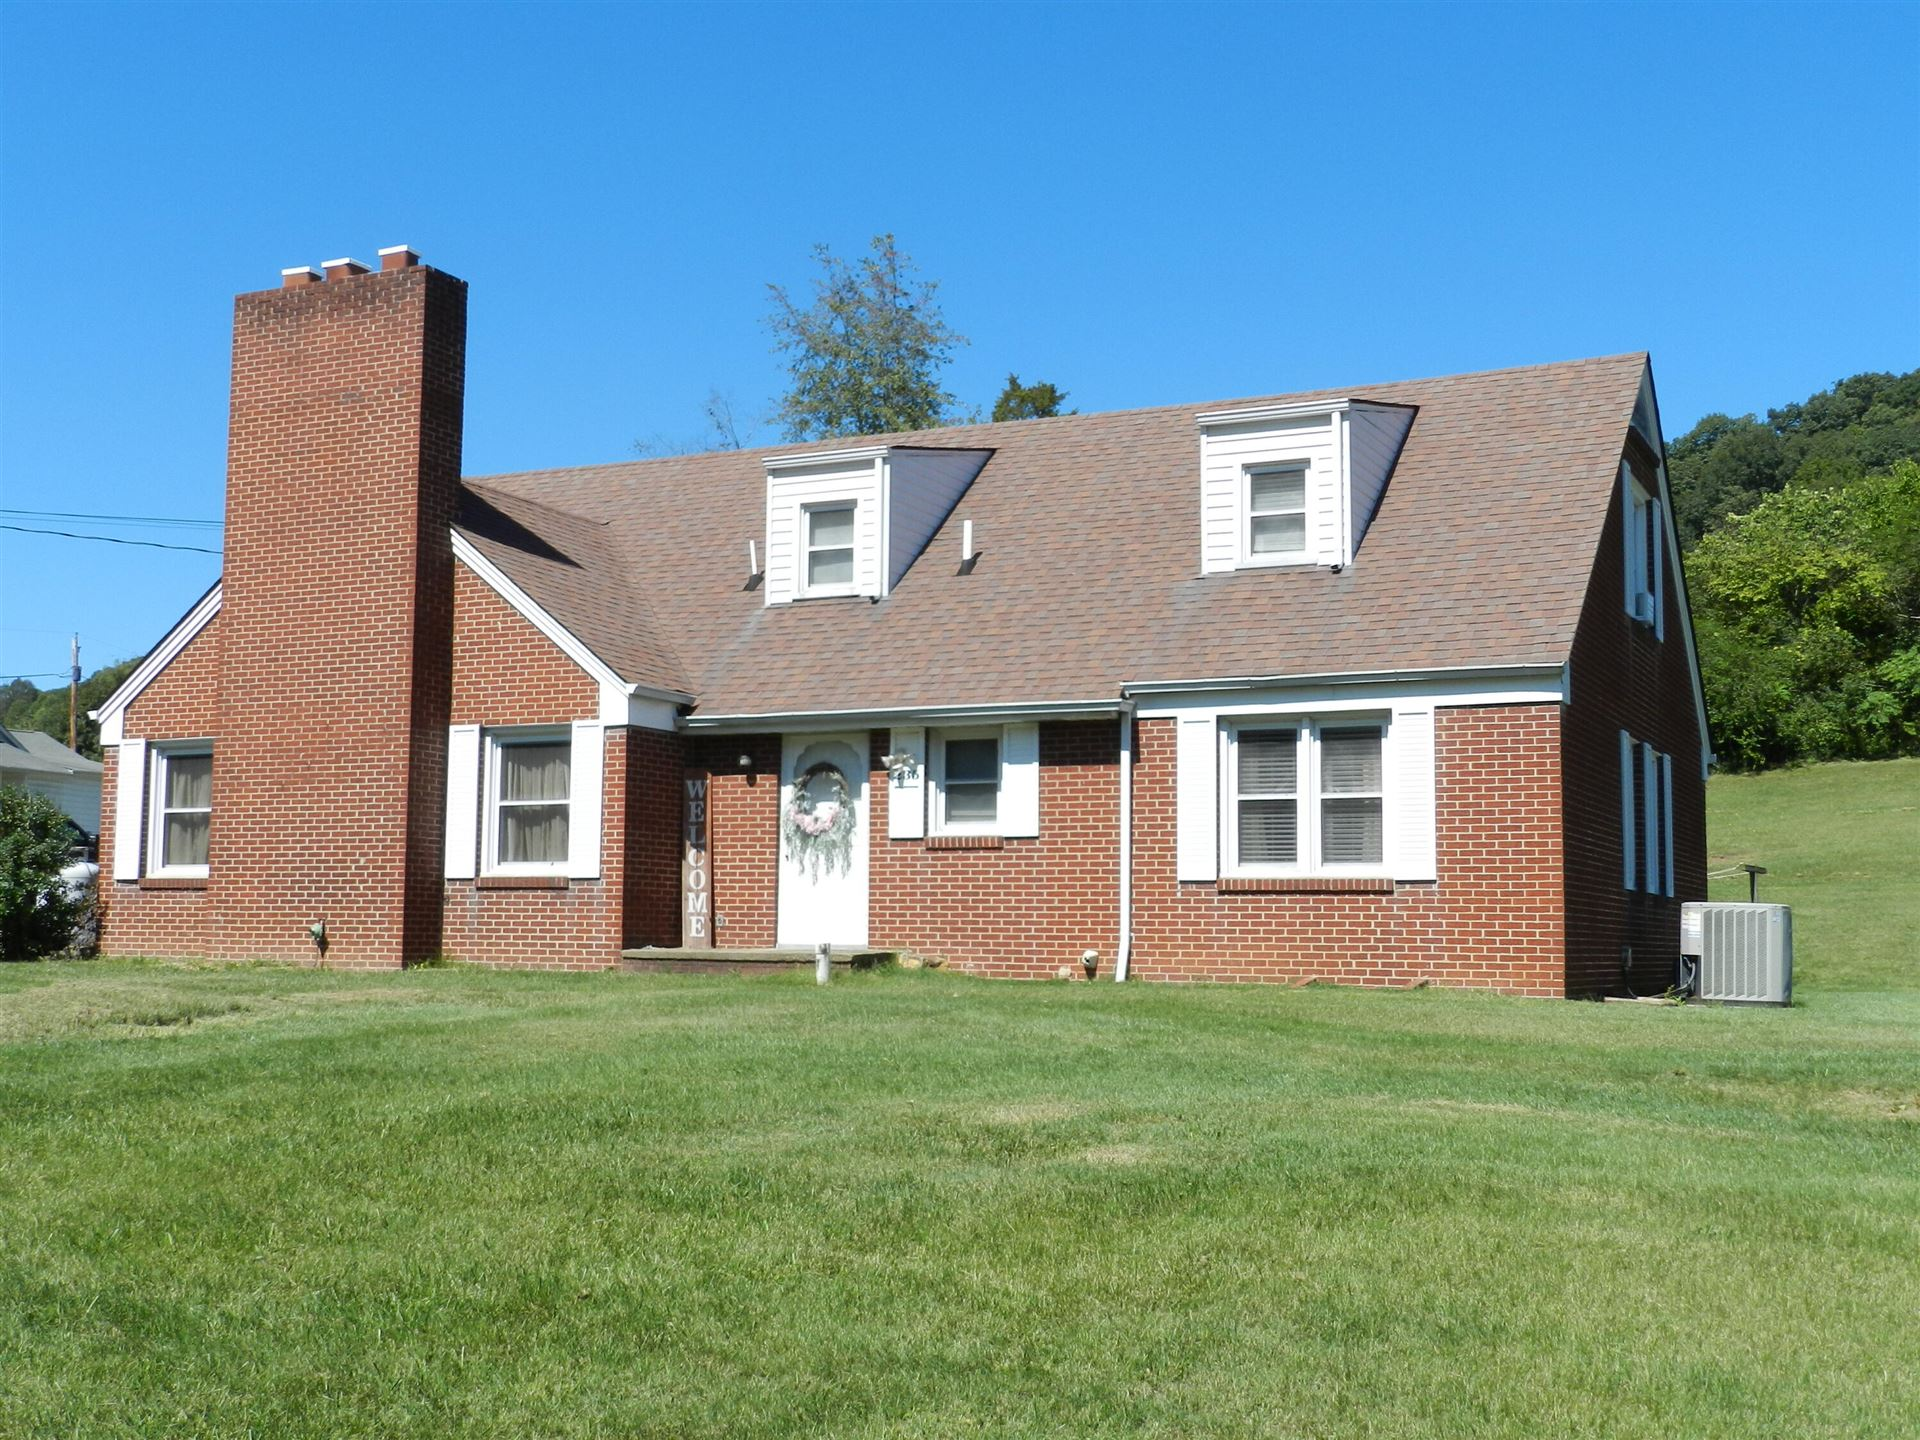 Photo of 235 West Carters Valley Road, Kingsport, TN 37665 (MLS # 9929169)